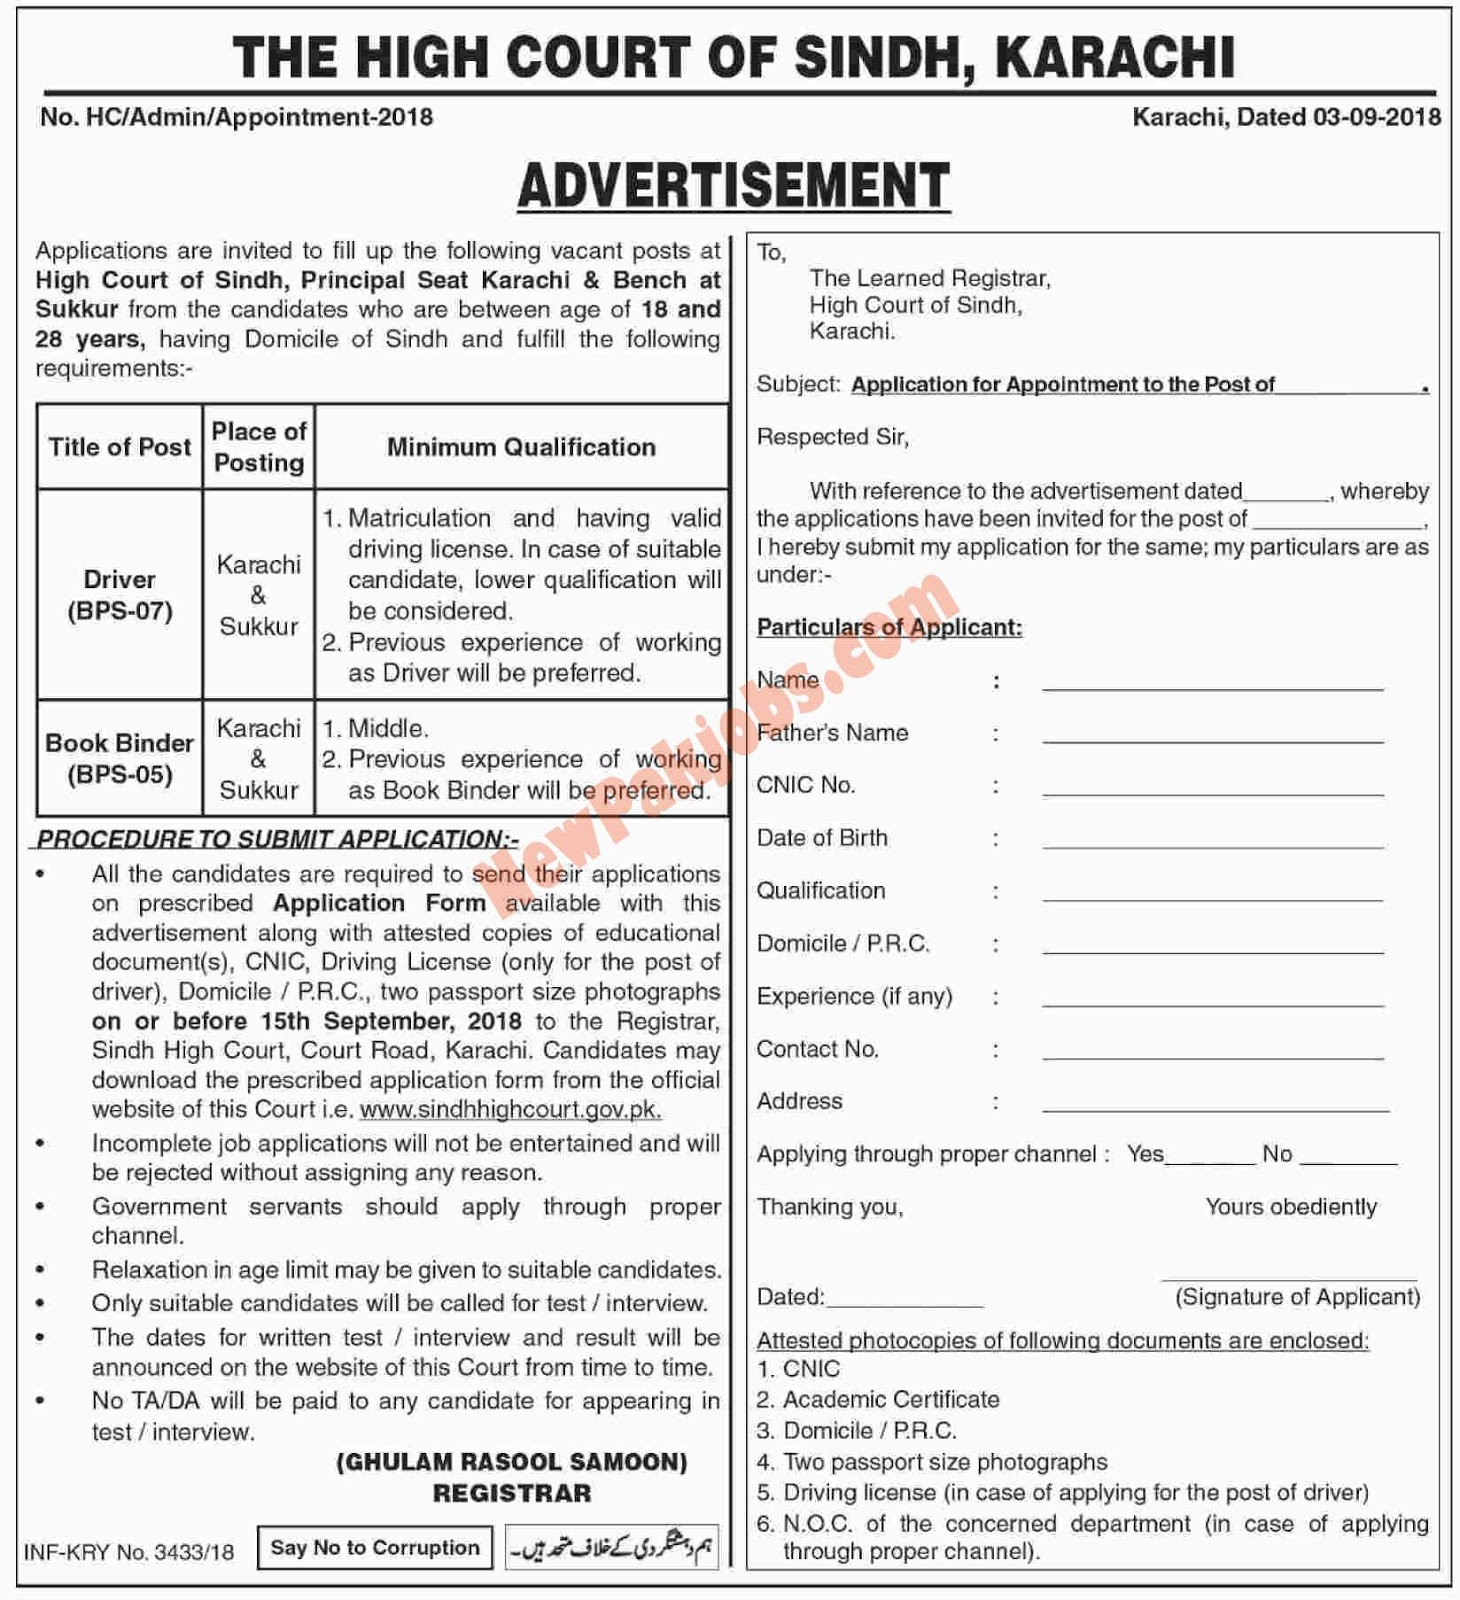 The High Court Of Sindh Required Driver,BookBinder